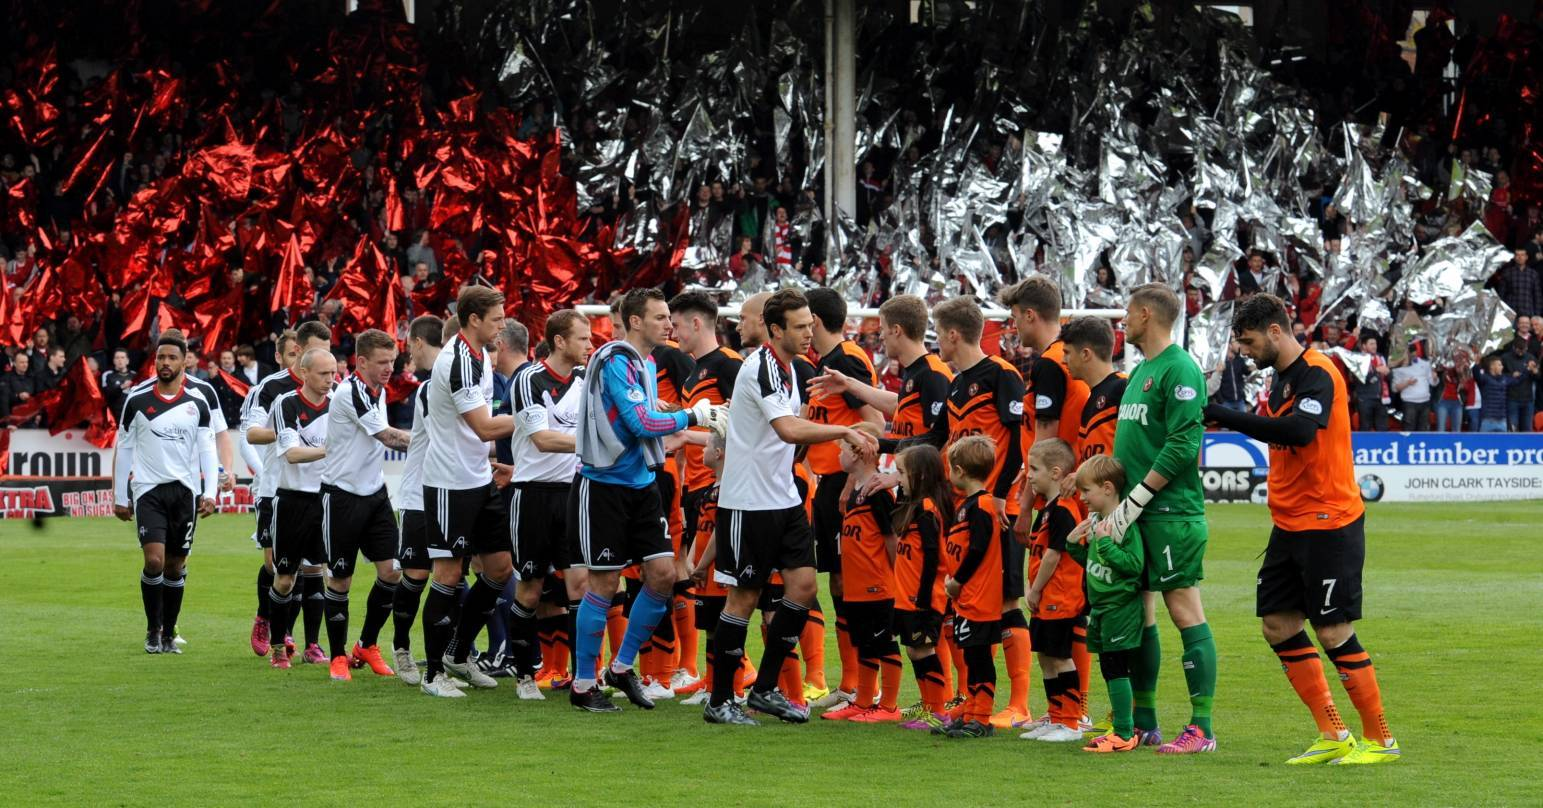 Dons and Dundee United players shake hands before the game.